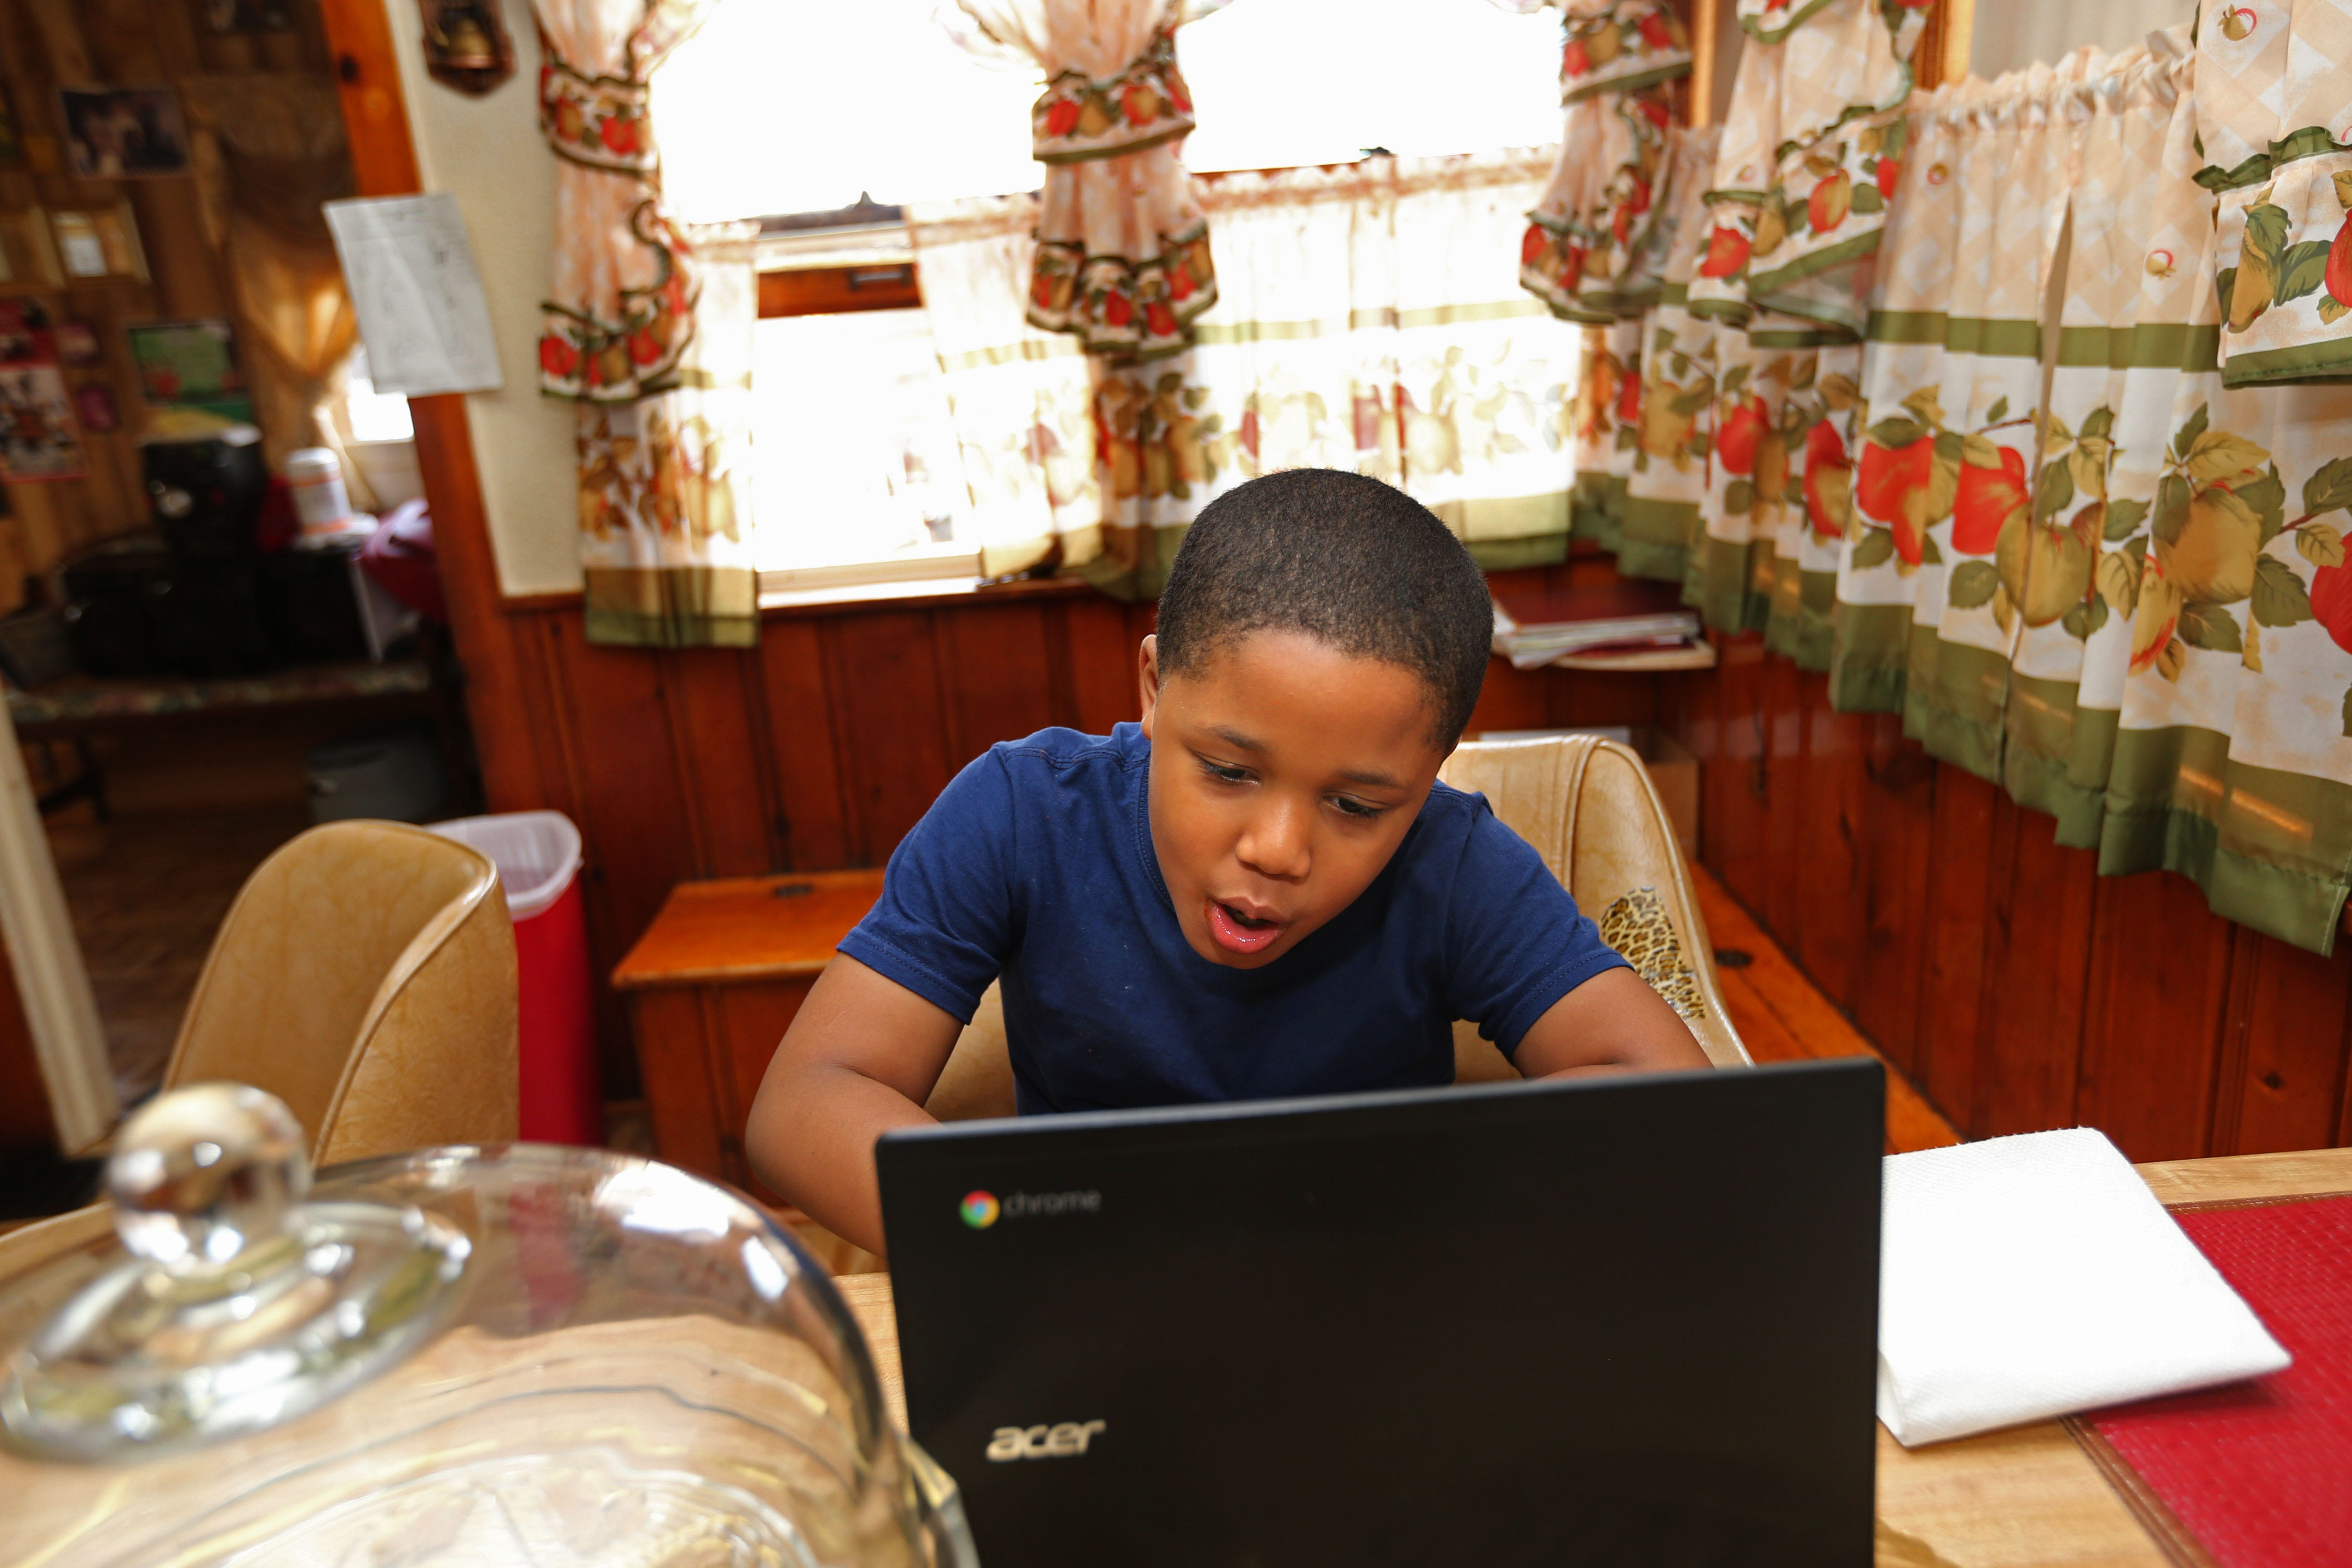 Josiah Johnson, 7, a second grader at Ralph H. Metcalfe School,  receives help from his MKE Fellows mentor and tutor Malachi Crenshaw at his grandmother's home. The program has been mentoring and helping students like Johnson with their classwork during the coronavirus pandemic.